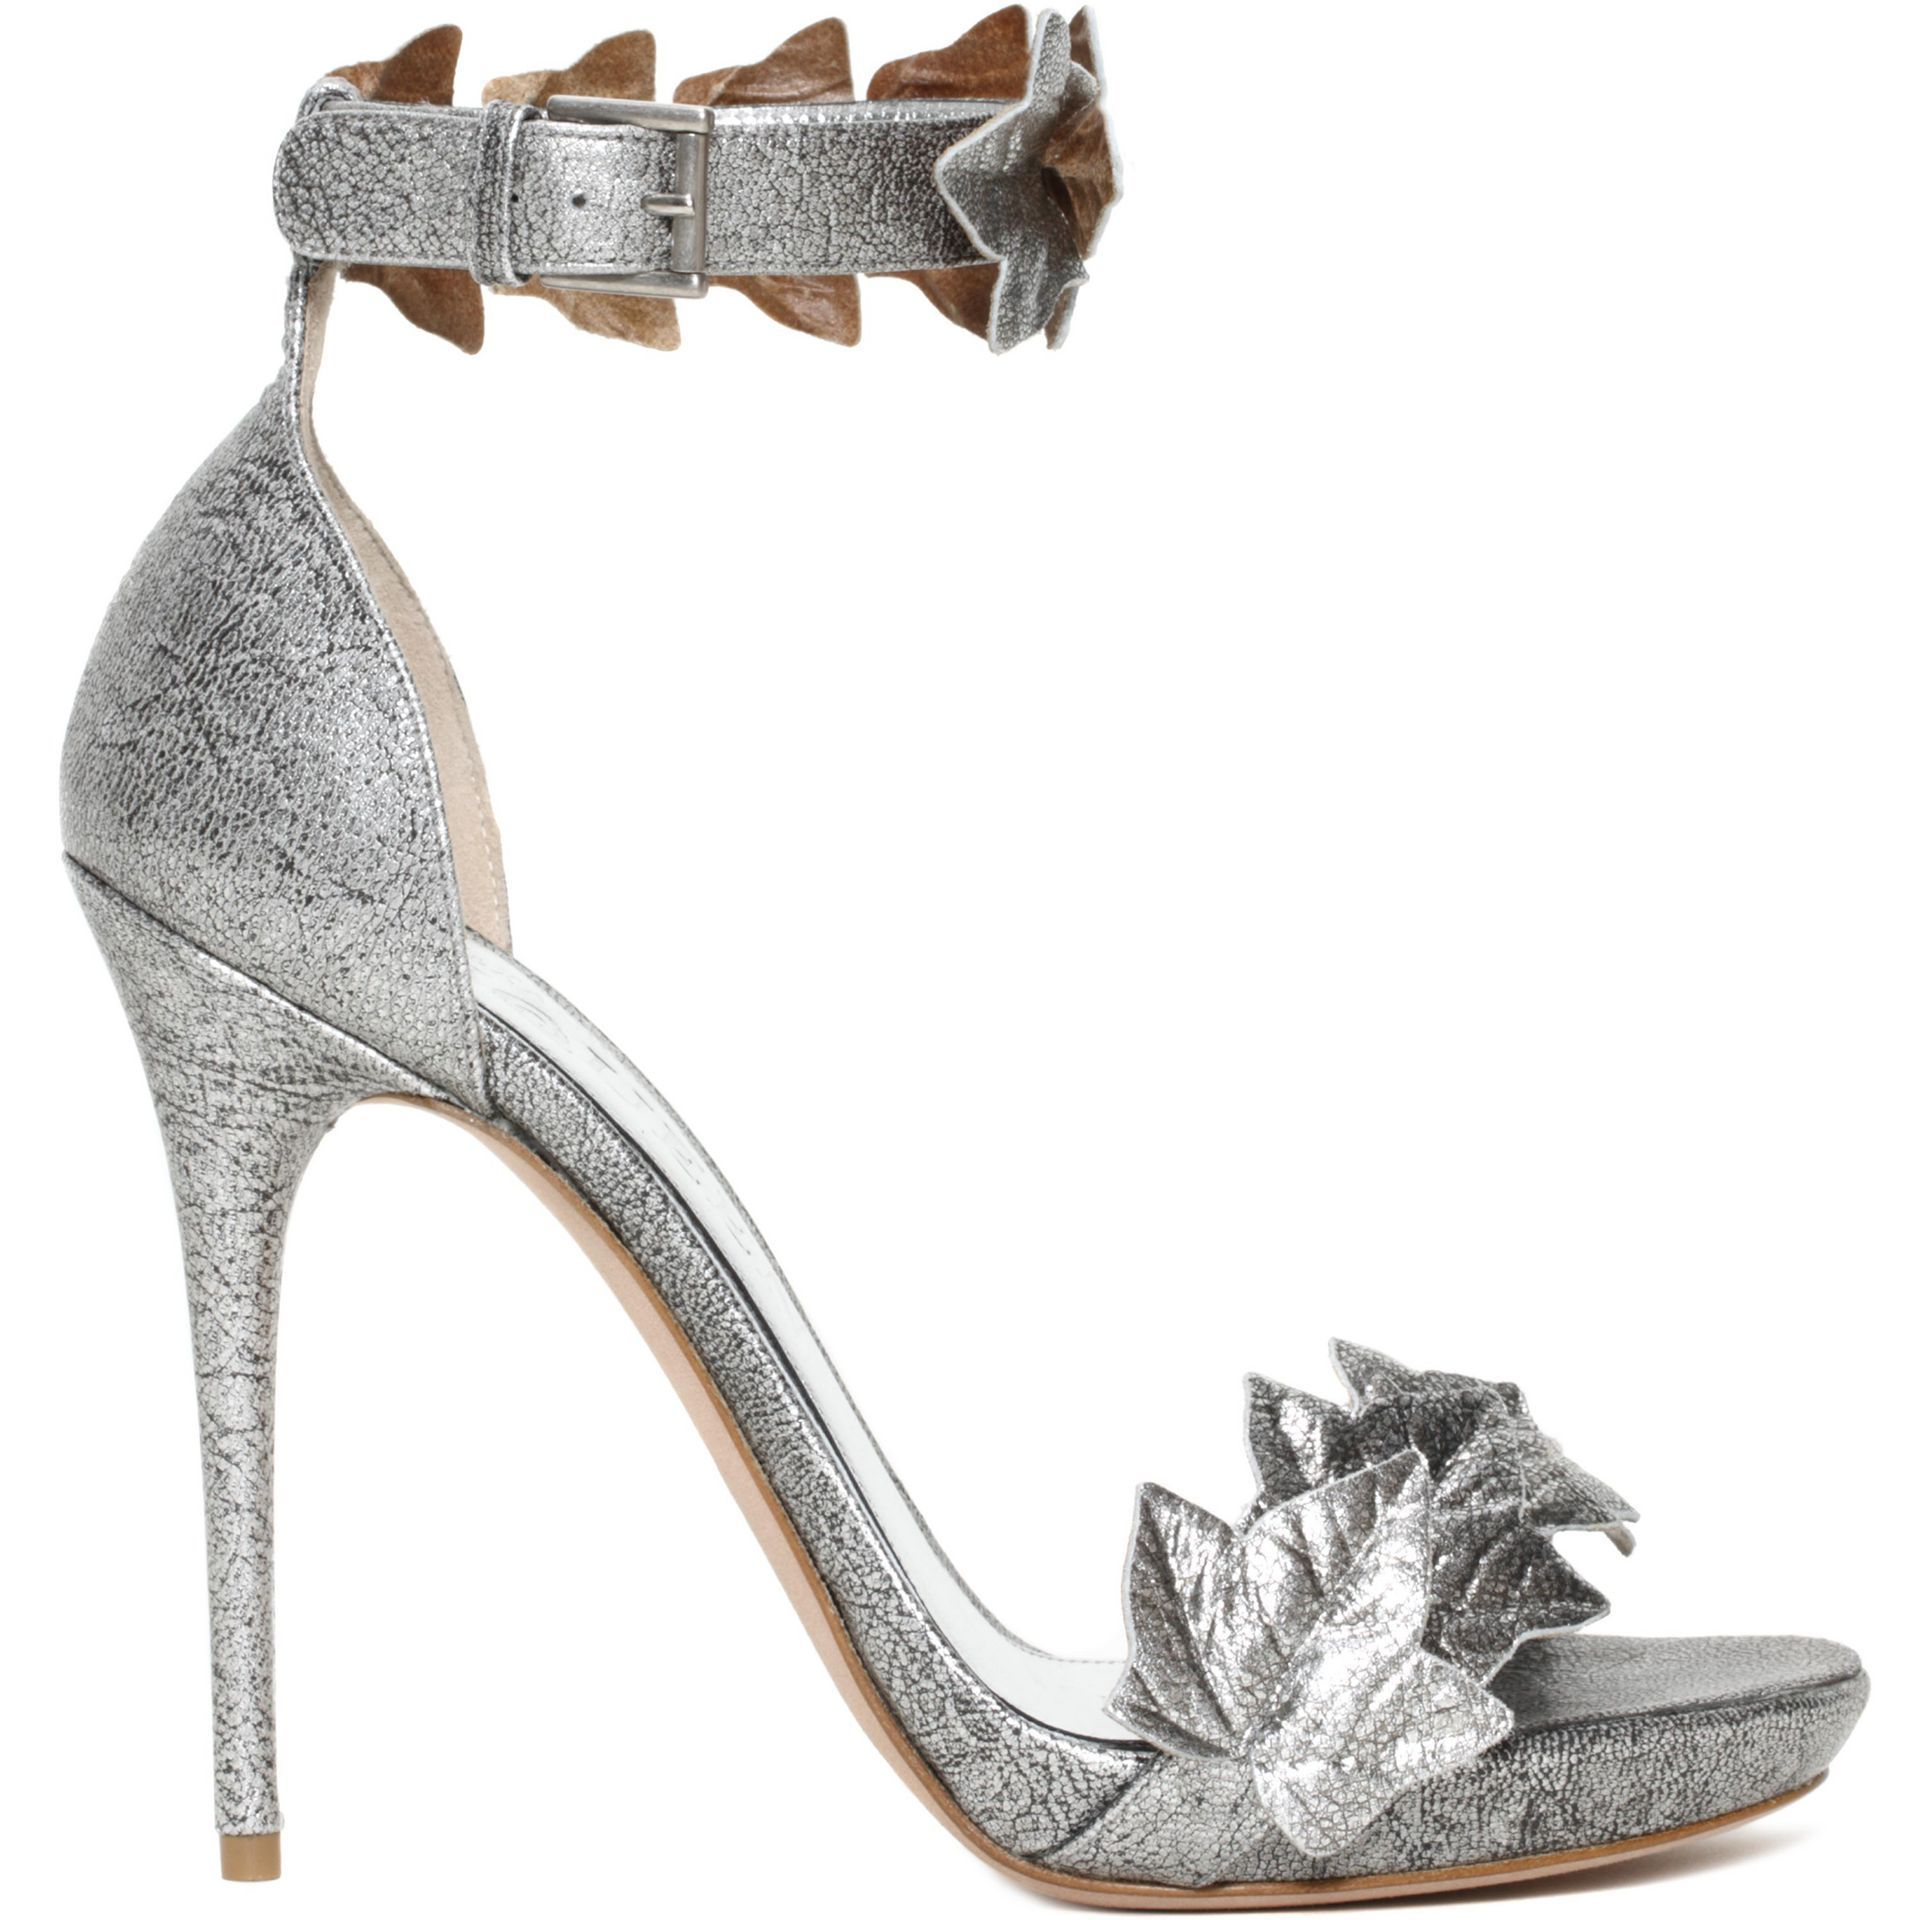 Ivy Ankle Wrap Sandal by Alexander McQueen - Found on HeartThis.com @HeartThis   See item http://www.heartthis.com/product/309848812616116286/